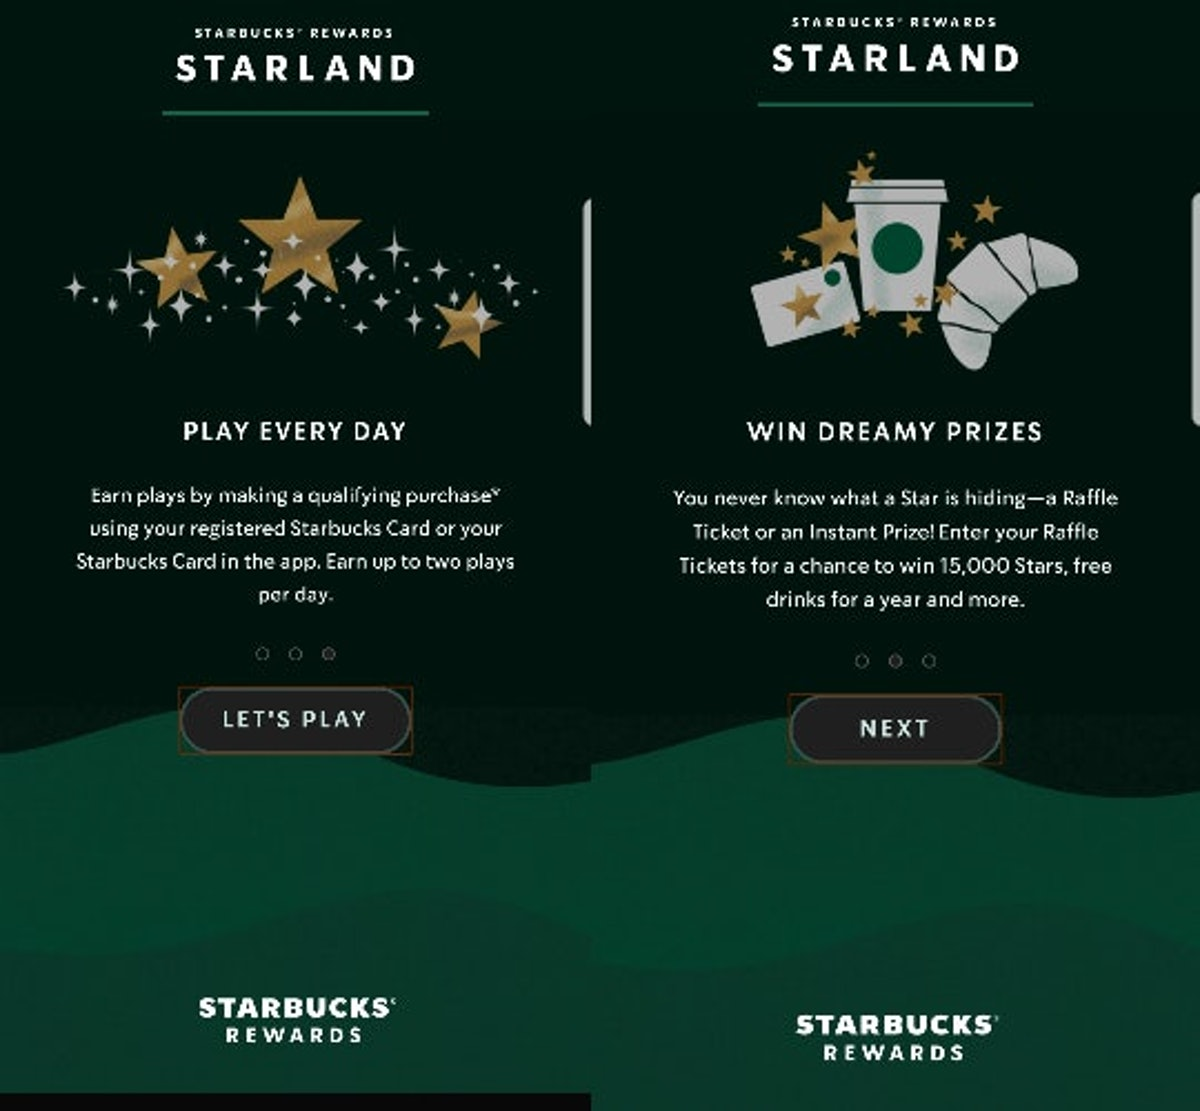 The Starbucks Starland Game Prizes could win you a year's worth of free breakfast and coffee.